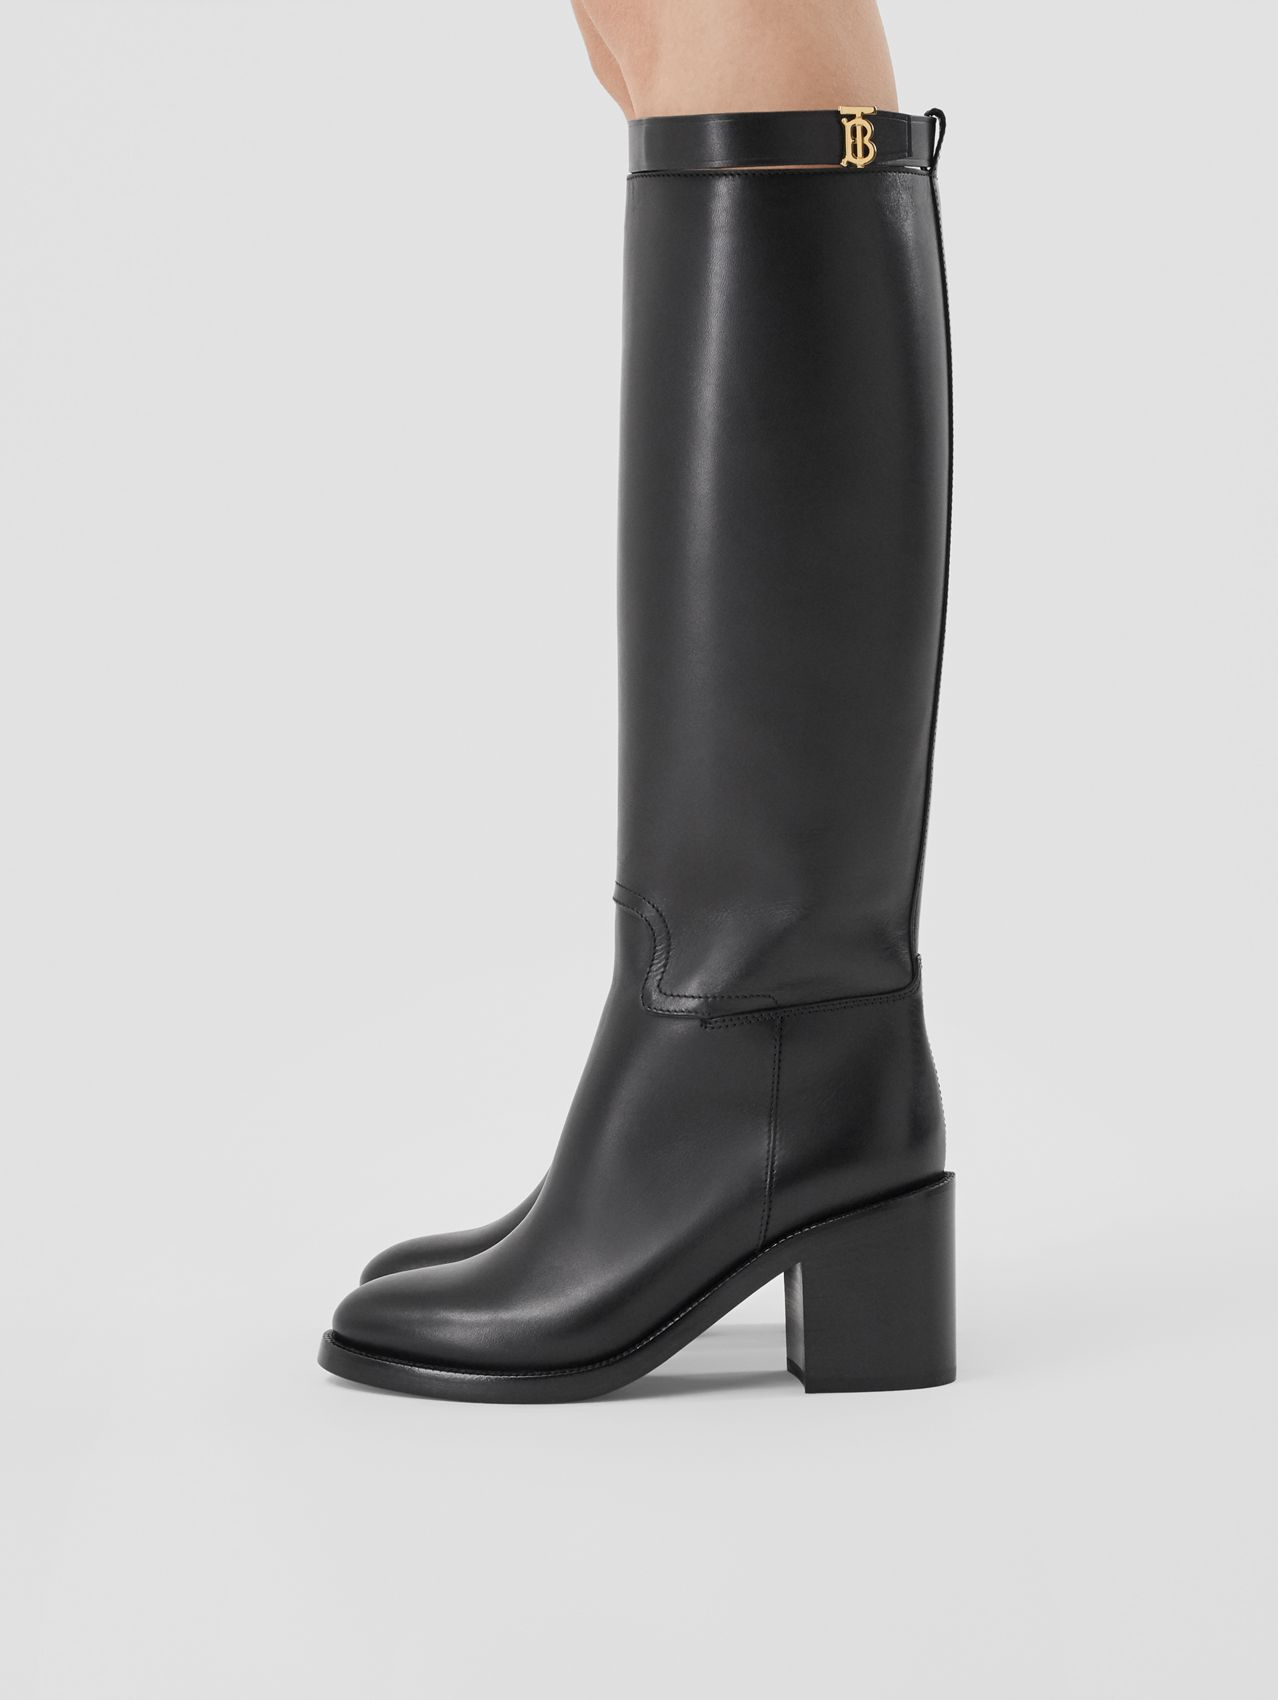 Monogram Motif Leather Knee-high Boots in Black